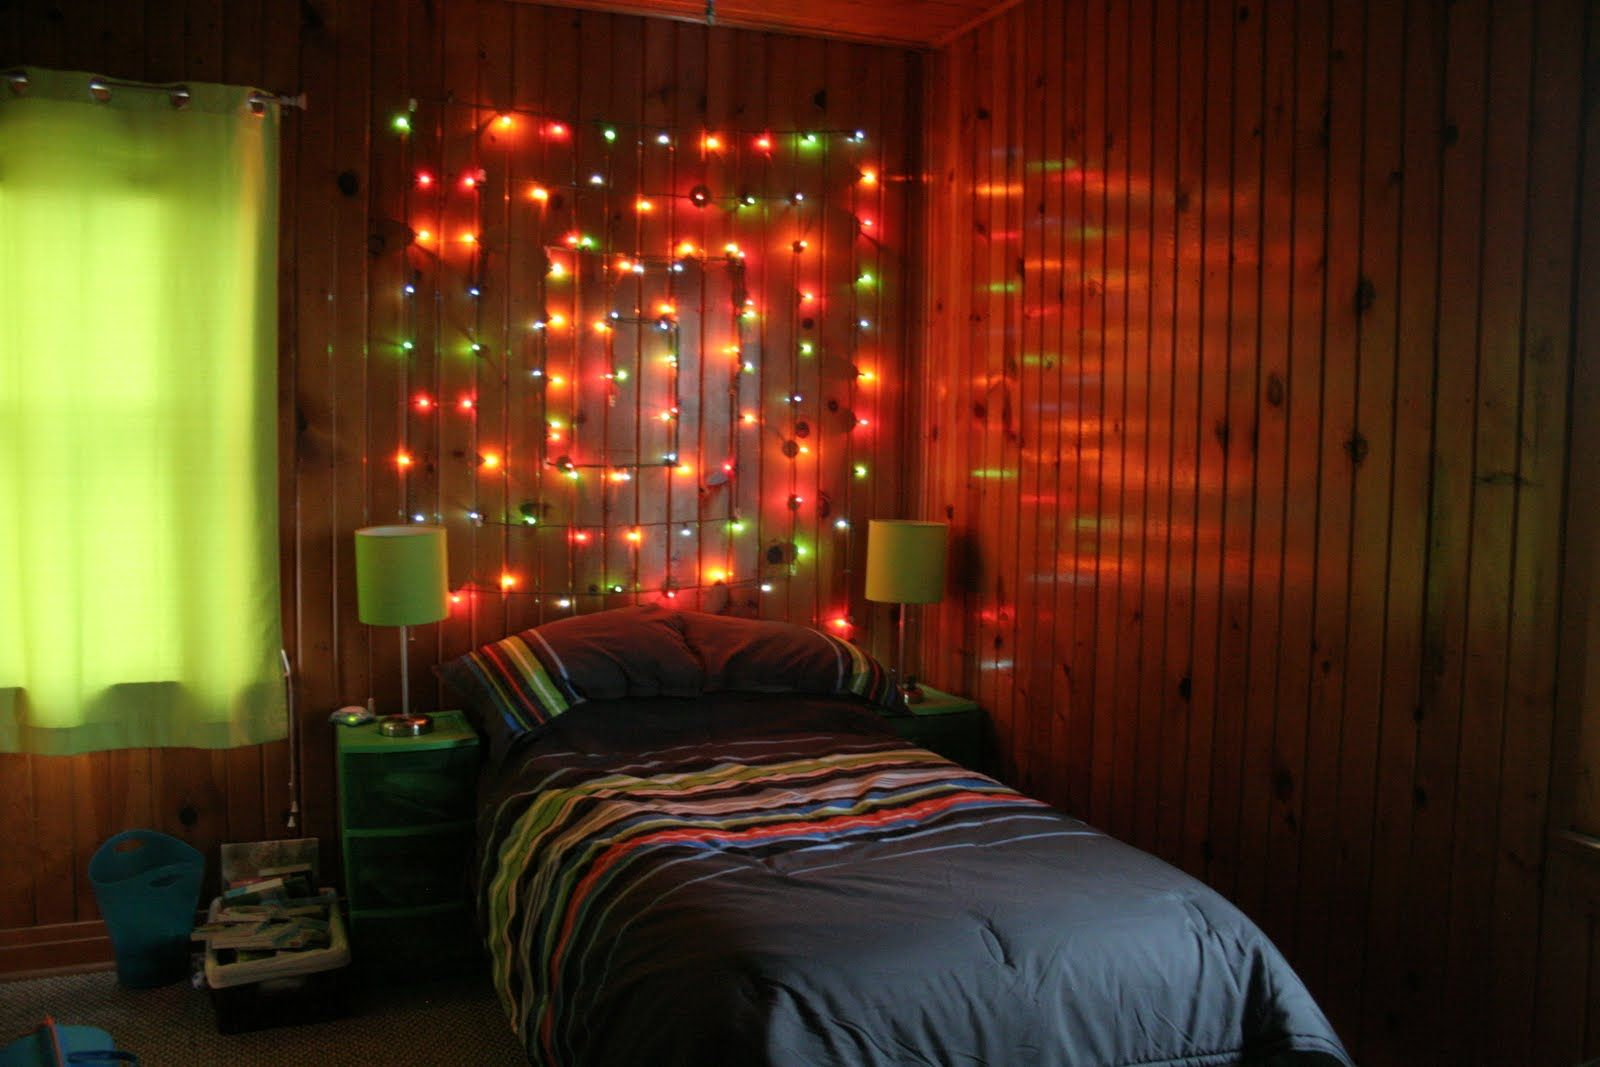 12 Cool Ways to Put up Christmas Lights in Your Bedroom. 12 Cool Ways to Put up Christmas Lights in Your Bedroom